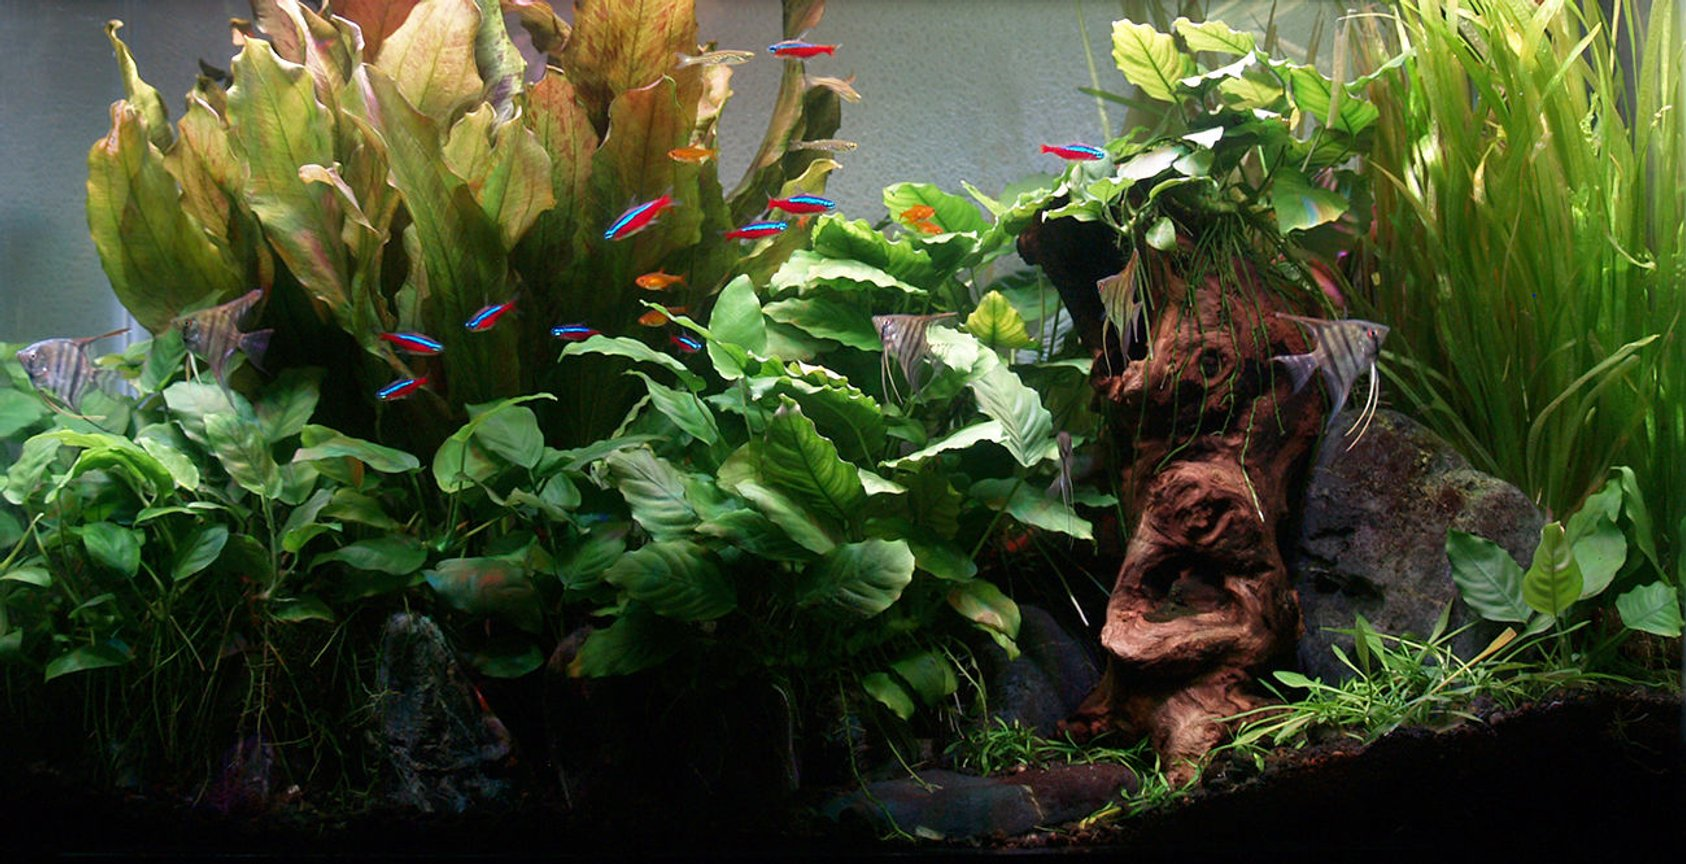 29 gallons planted tank (mostly live plants and fish) - Tank up 3 years since November 2012. 10 Cardinals & 7 Ember Tetras are original residents. 5 Angels new & will be transferred to new larger tank being setup. Goldring Danios introduced Dec 14 and Celestial Pearl Danios introduced Jan 2015. Plants are all from original setup, except some of the Crypto Parva. Anubias all propagated from 2 original plants. I harvest and supply all my friends with Anubias and Jungle Vals quite frequently and have harvested 4 plants from the one echinodorus.